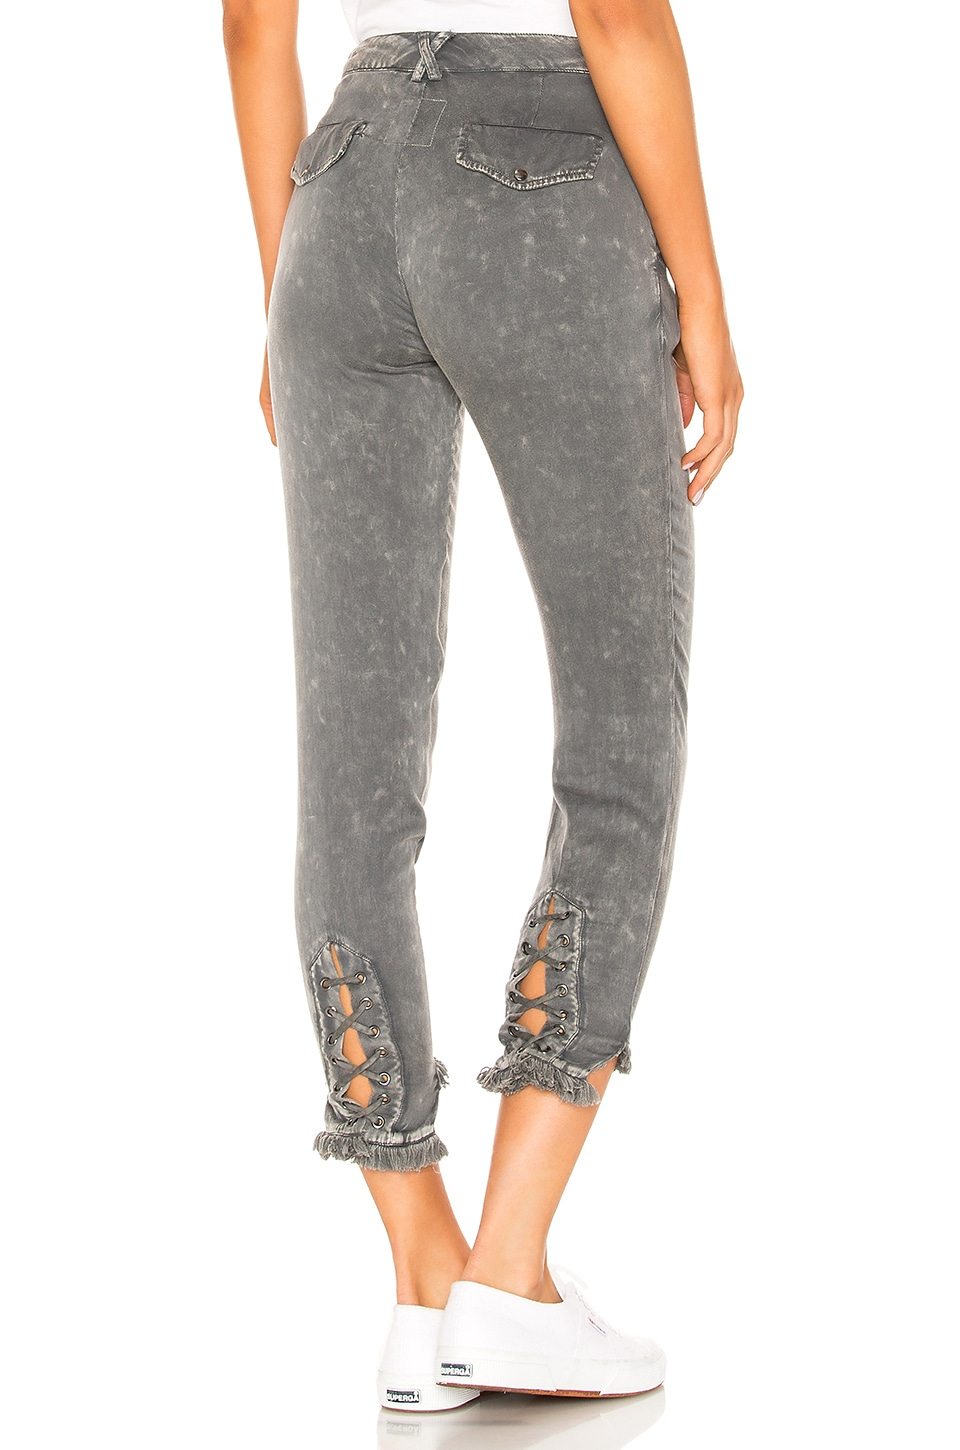 Chaser Lace Up Pant with Frayed Edge in Flax Cloud Wash